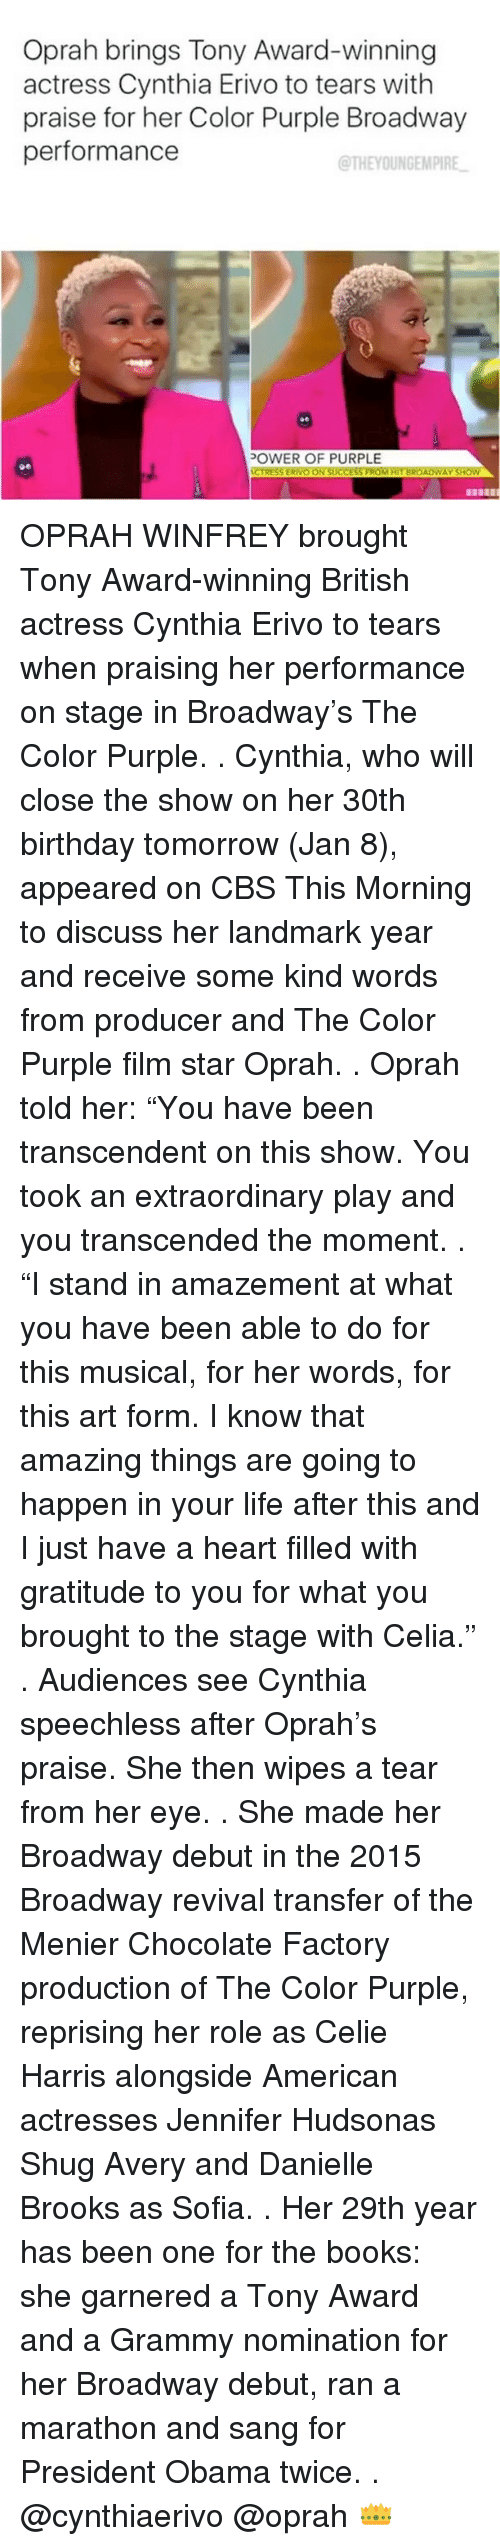 "Grammys, Memes, and Oprah Winfrey: Oprah brings Tony Award-winning  actress Cynthia Erivo to tears with  praise for her Color Purple Broadway  performance  @THEYOUNGEMPIRE  POWER OF PURPLE  NCTRESSERIVO ON SUCCESSFROM HITBROADWAY SHOW OPRAH WINFREY brought Tony Award-winning British actress Cynthia Erivo to tears when praising her performance on stage in Broadway's The Color Purple. . Cynthia, who will close the show on her 30th birthday tomorrow (Jan 8), appeared on CBS This Morning to discuss her landmark year and receive some kind words from producer and The Color Purple film star Oprah. . Oprah told her: ""You have been transcendent on this show. You took an extraordinary play and you transcended the moment. . ""I stand in amazement at what you have been able to do for this musical, for her words, for this art form. I know that amazing things are going to happen in your life after this and I just have a heart filled with gratitude to you for what you brought to the stage with Celia."" . Audiences see Cynthia speechless after Oprah's praise. She then wipes a tear from her eye. . She made her Broadway debut in the 2015 Broadway revival transfer of the Menier Chocolate Factory production of The Color Purple, reprising her role as Celie Harris alongside American actresses Jennifer Hudsonas Shug Avery and Danielle Brooks as Sofia. . Her 29th year has been one for the books: she garnered a Tony Award and a Grammy nomination for her Broadway debut, ran a marathon and sang for President Obama twice. . @cynthiaerivo @oprah 👑"